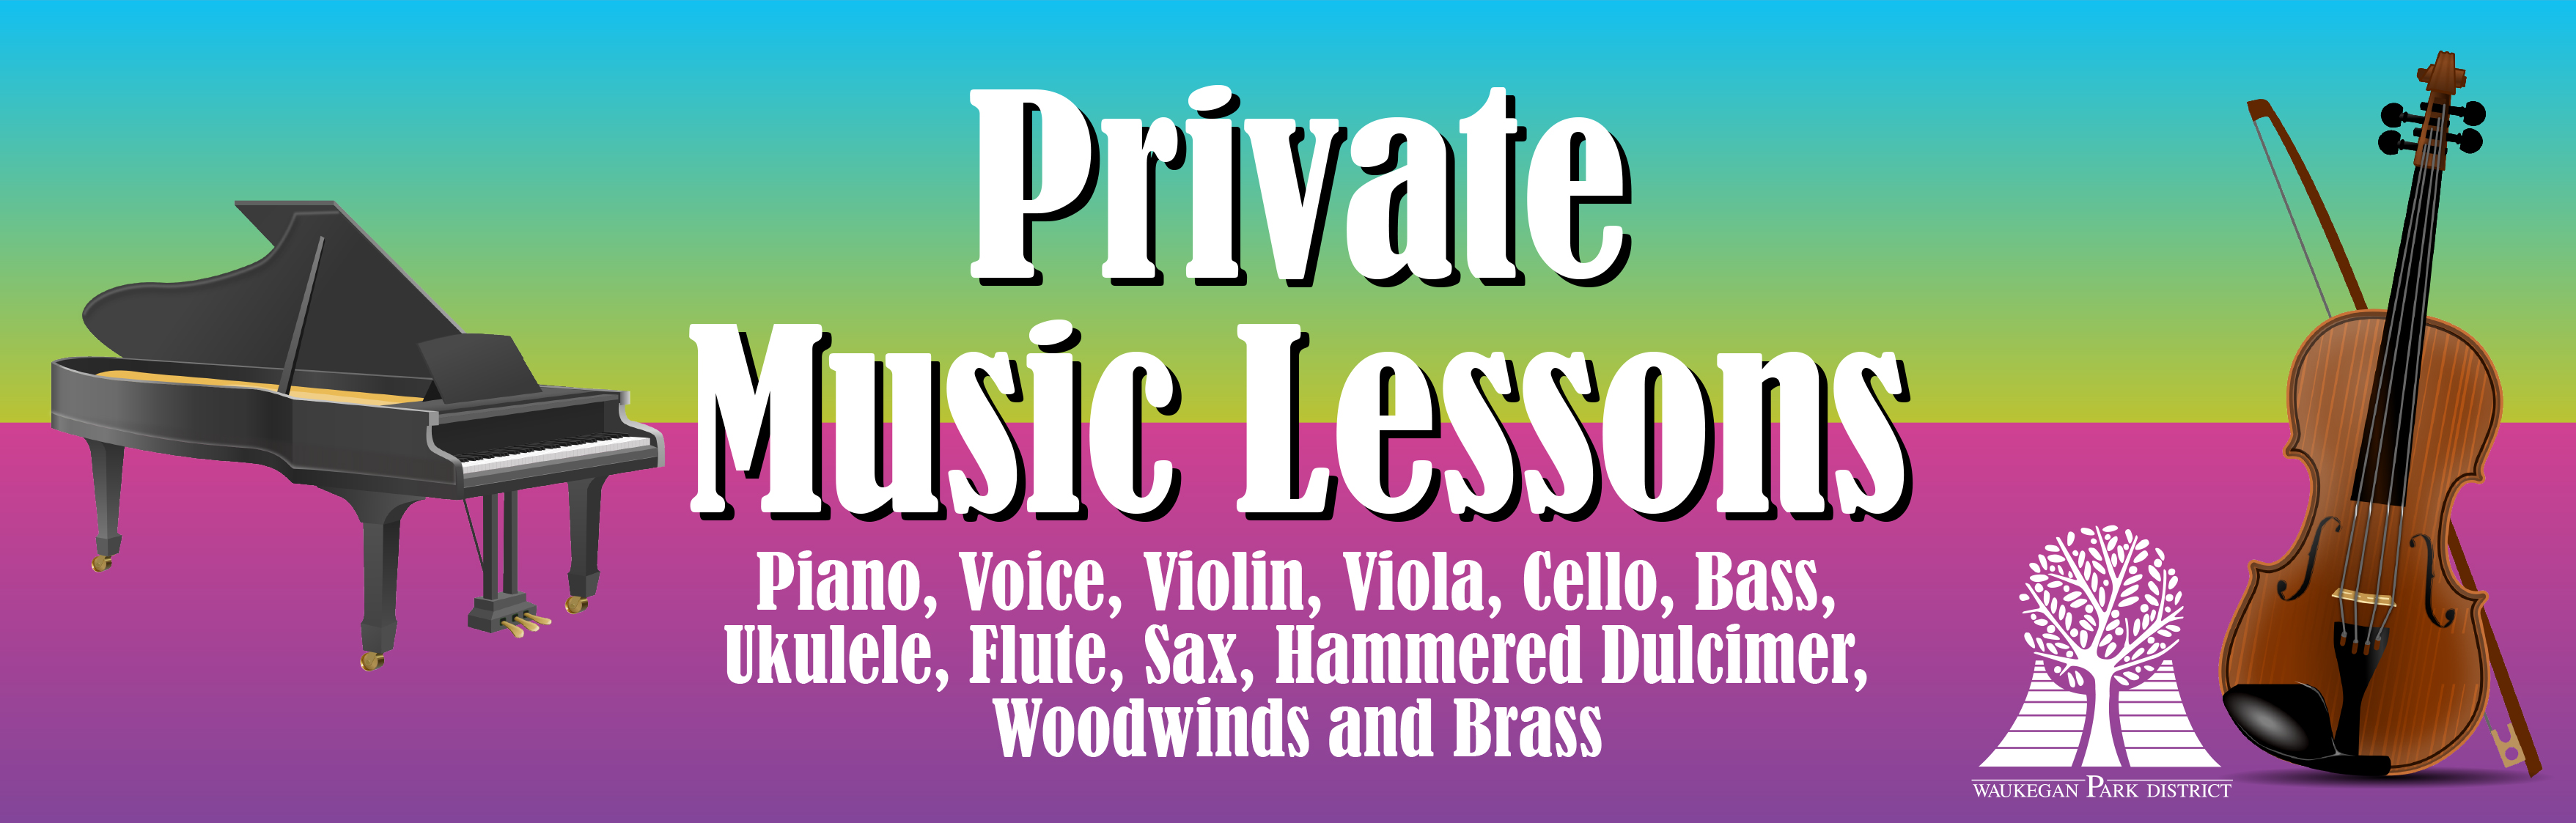 Private Music Lessons with Instruments